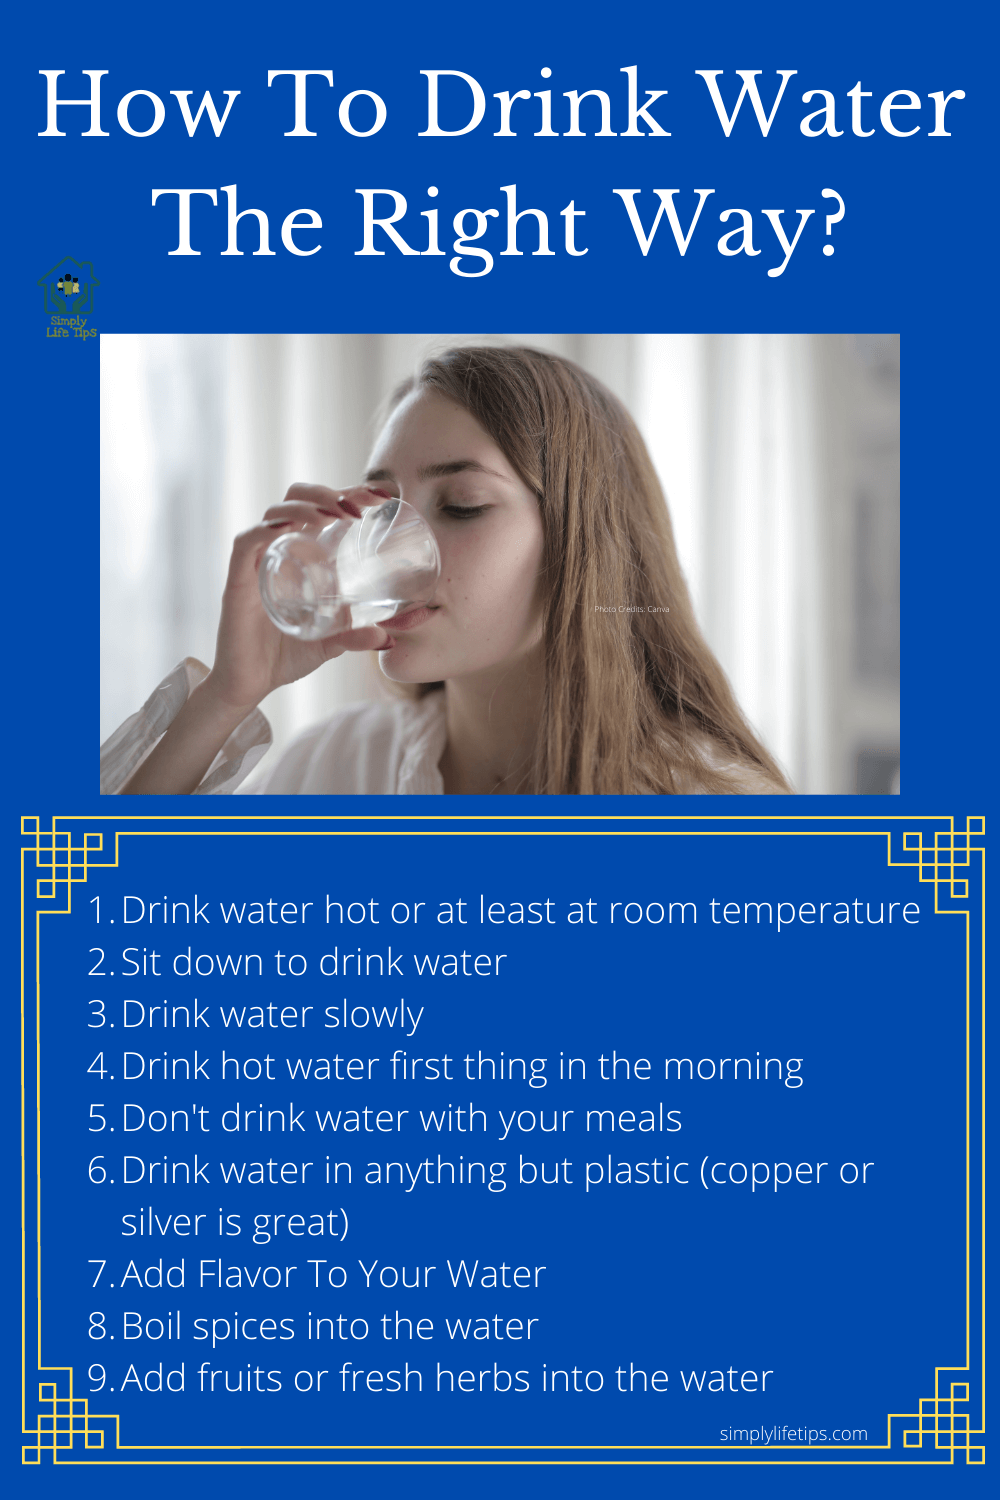 How to drink water the right way